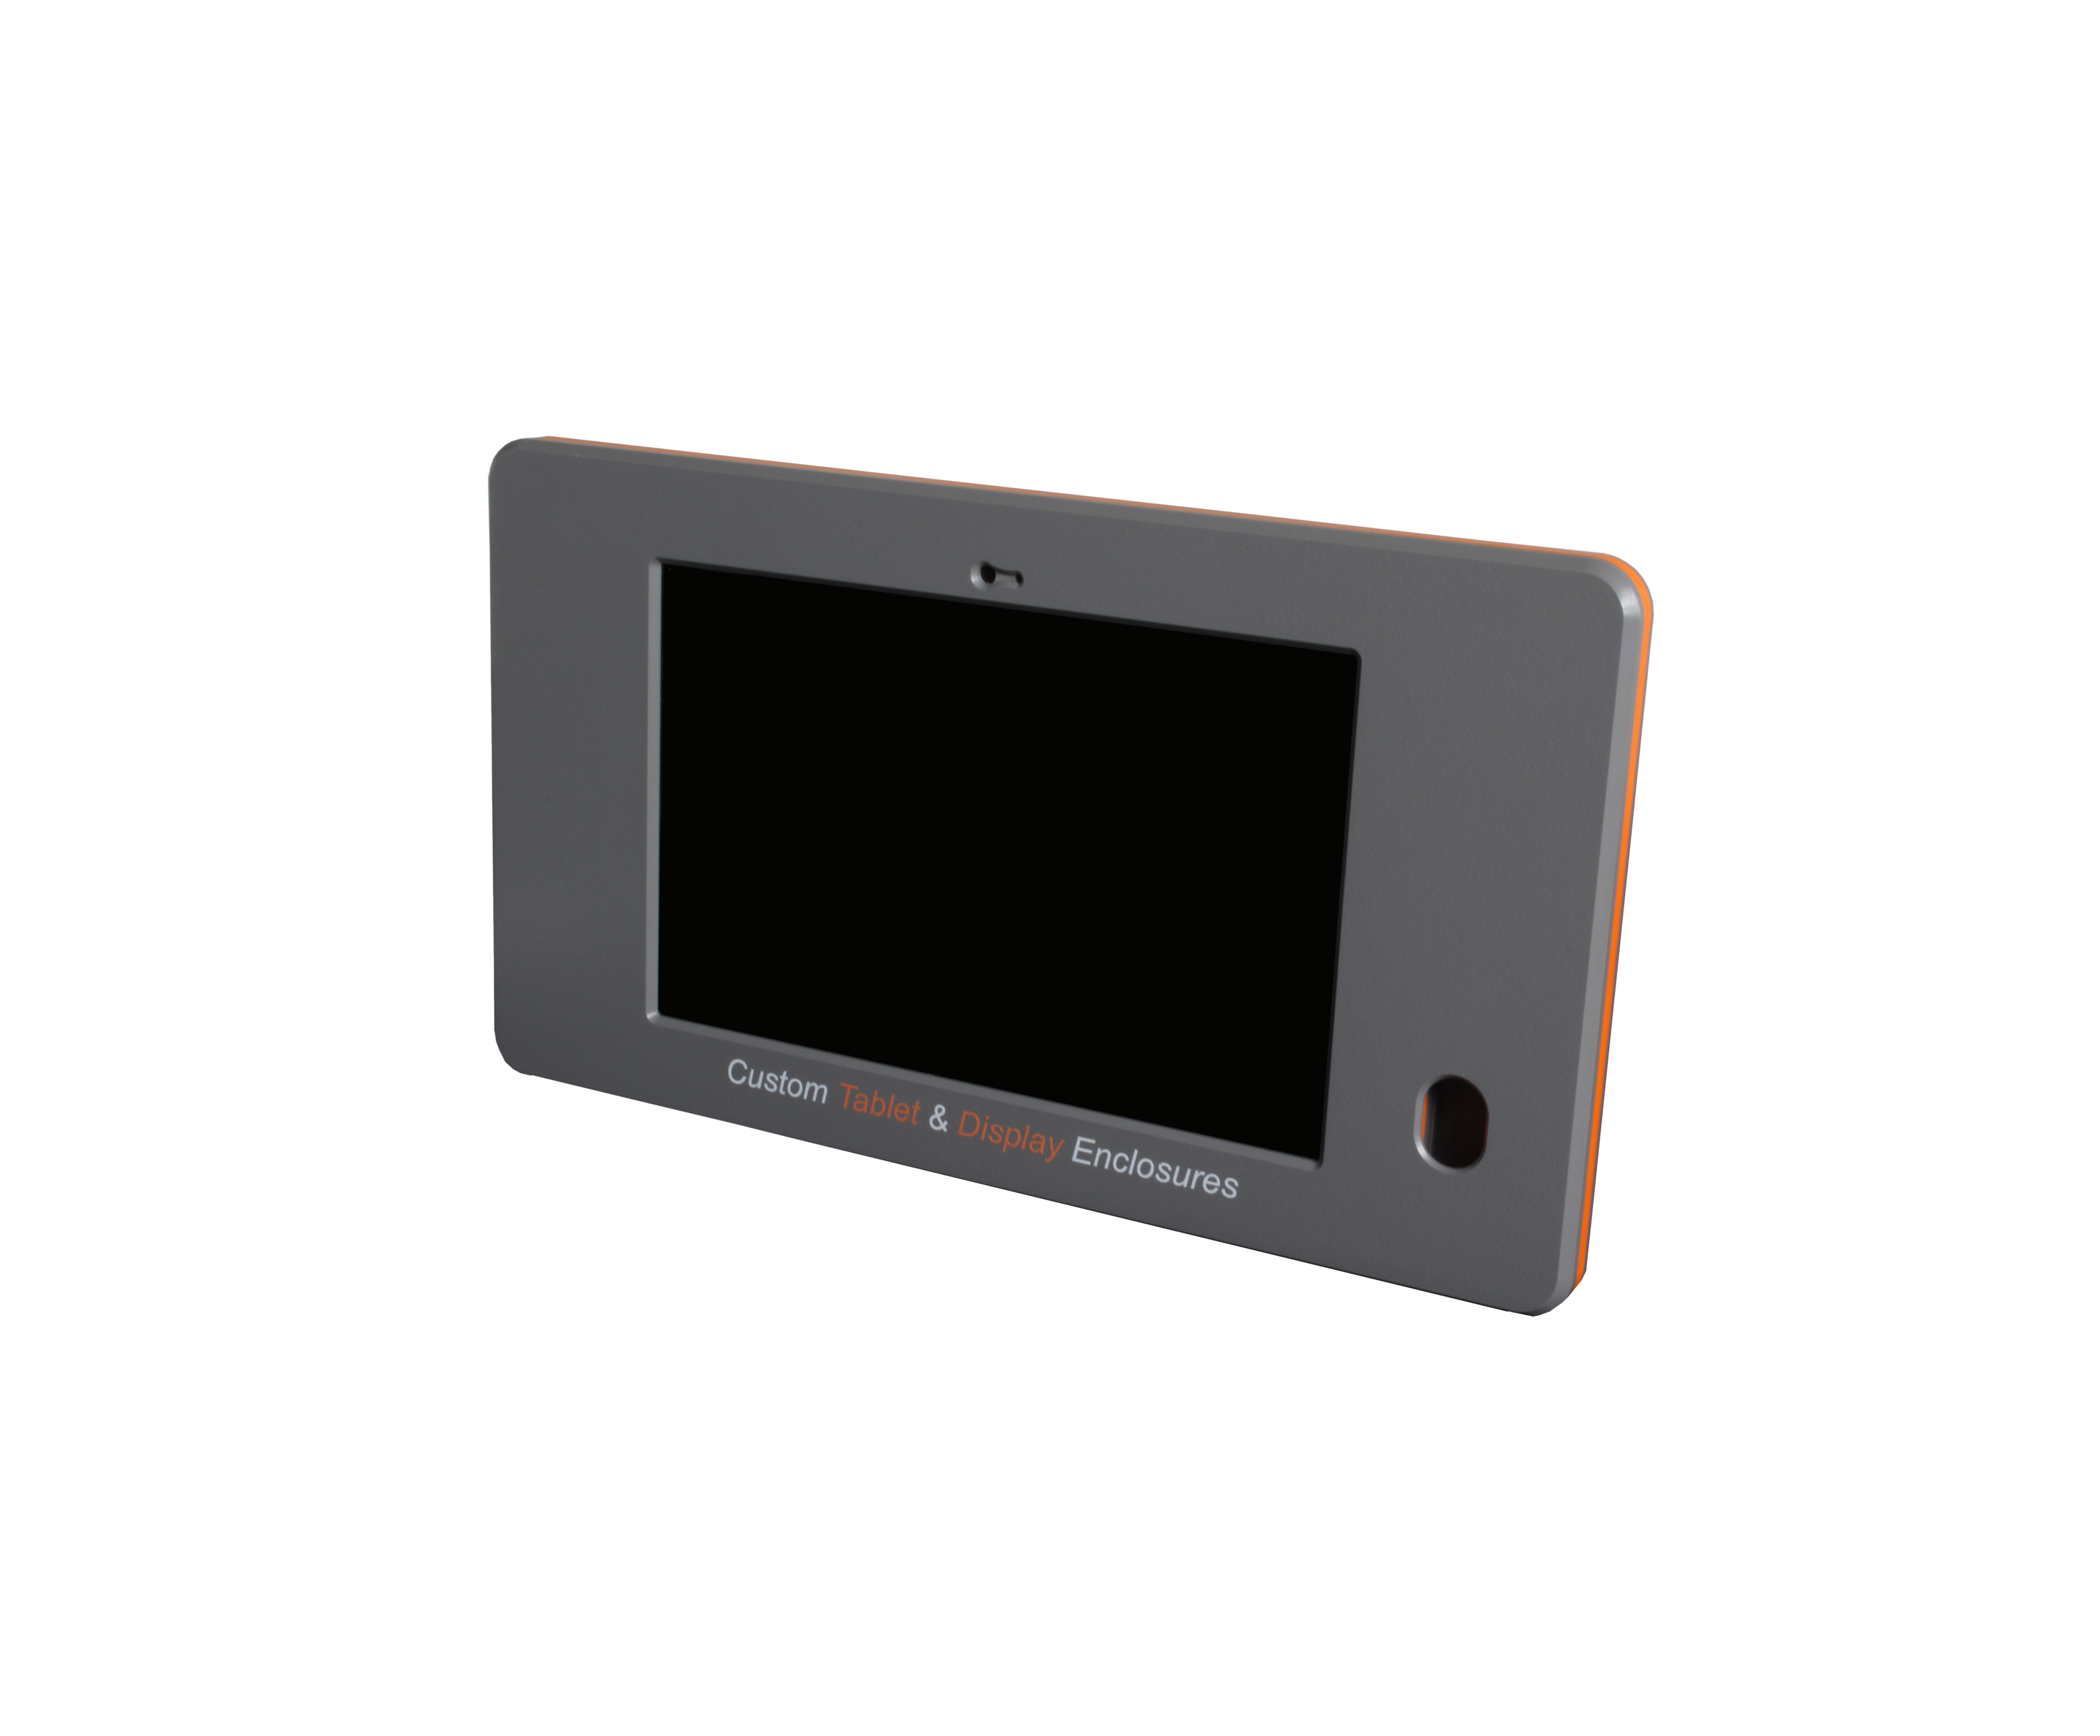 Fabricated plastic tablet enclosure